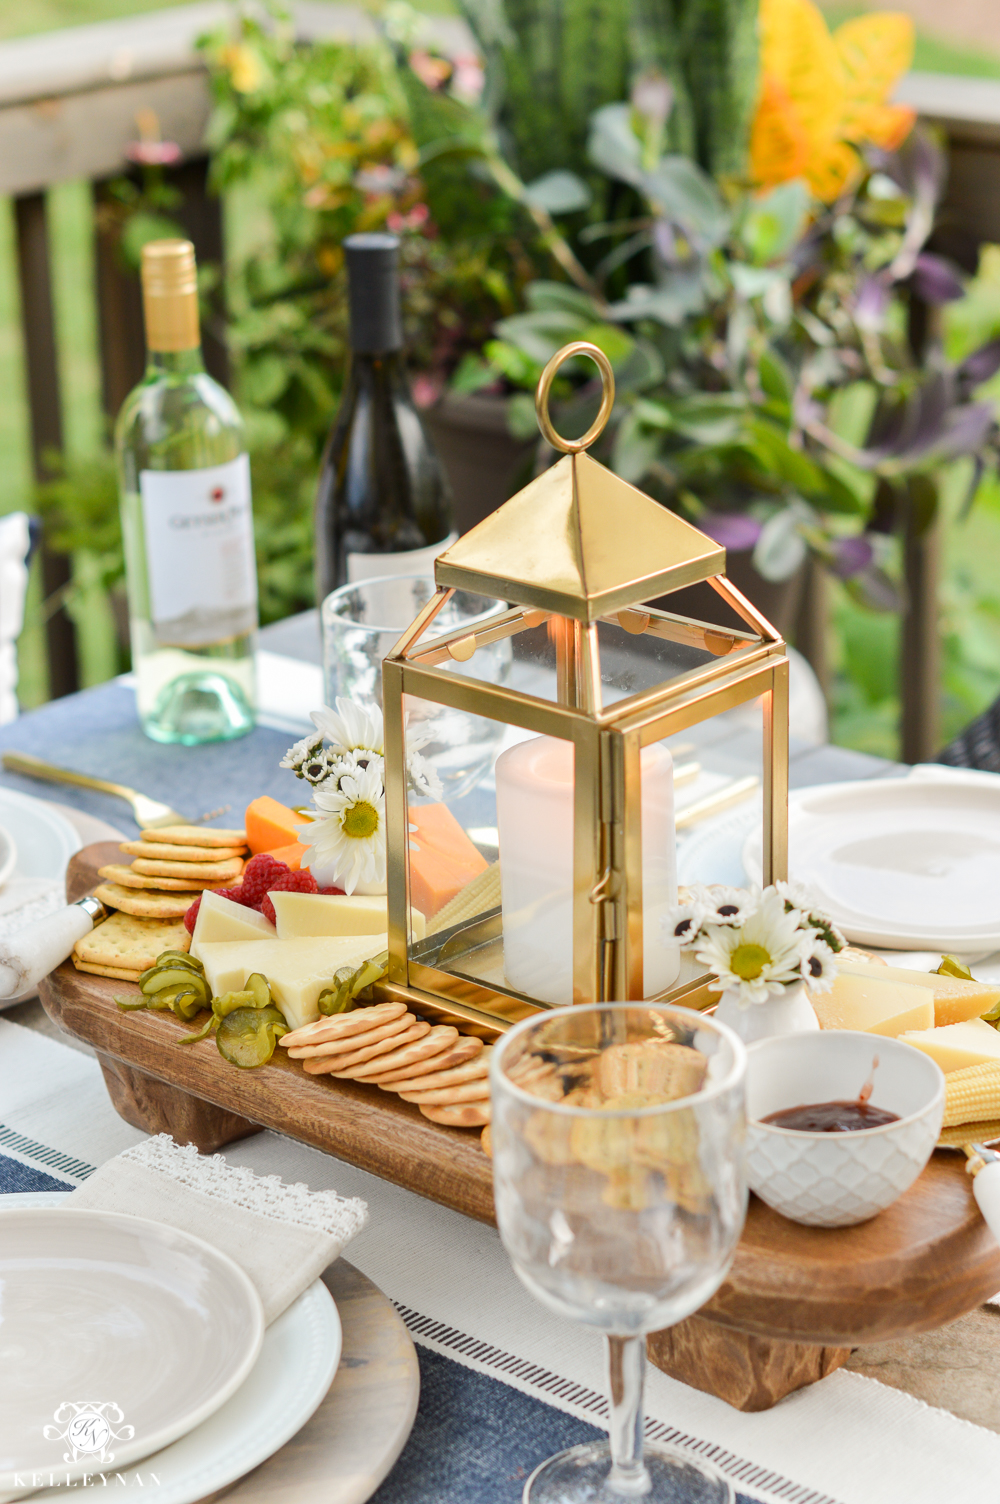 Outdoor Entertaining and Table Ideas with Cheese board appetizer centerpieces- wooden board with lanterns